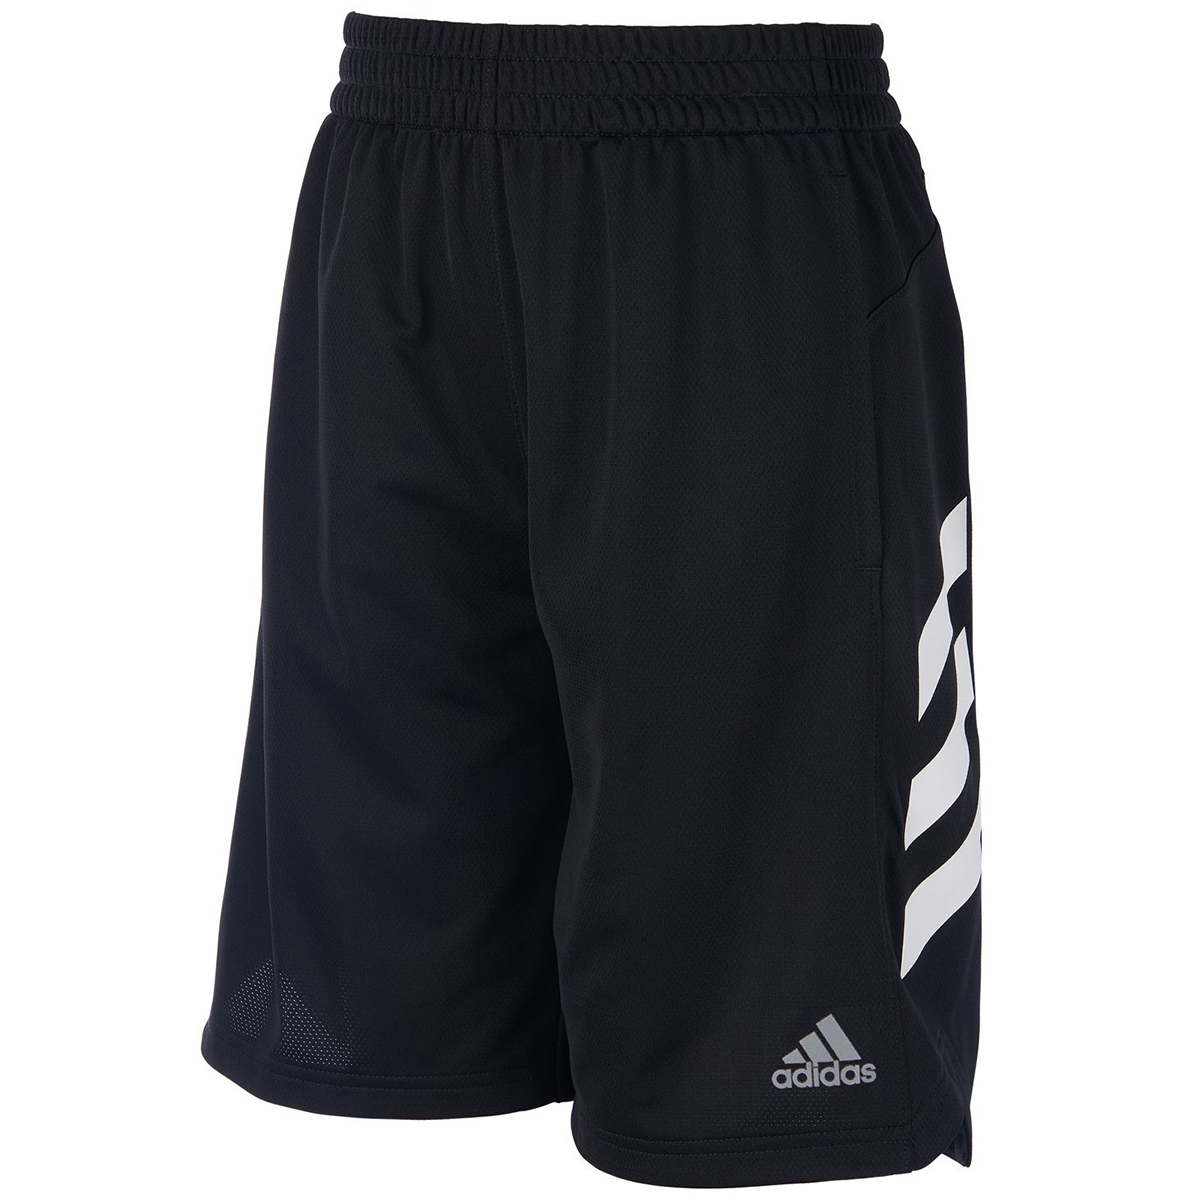 Adidas Boys' Sport Shorts - Black, L